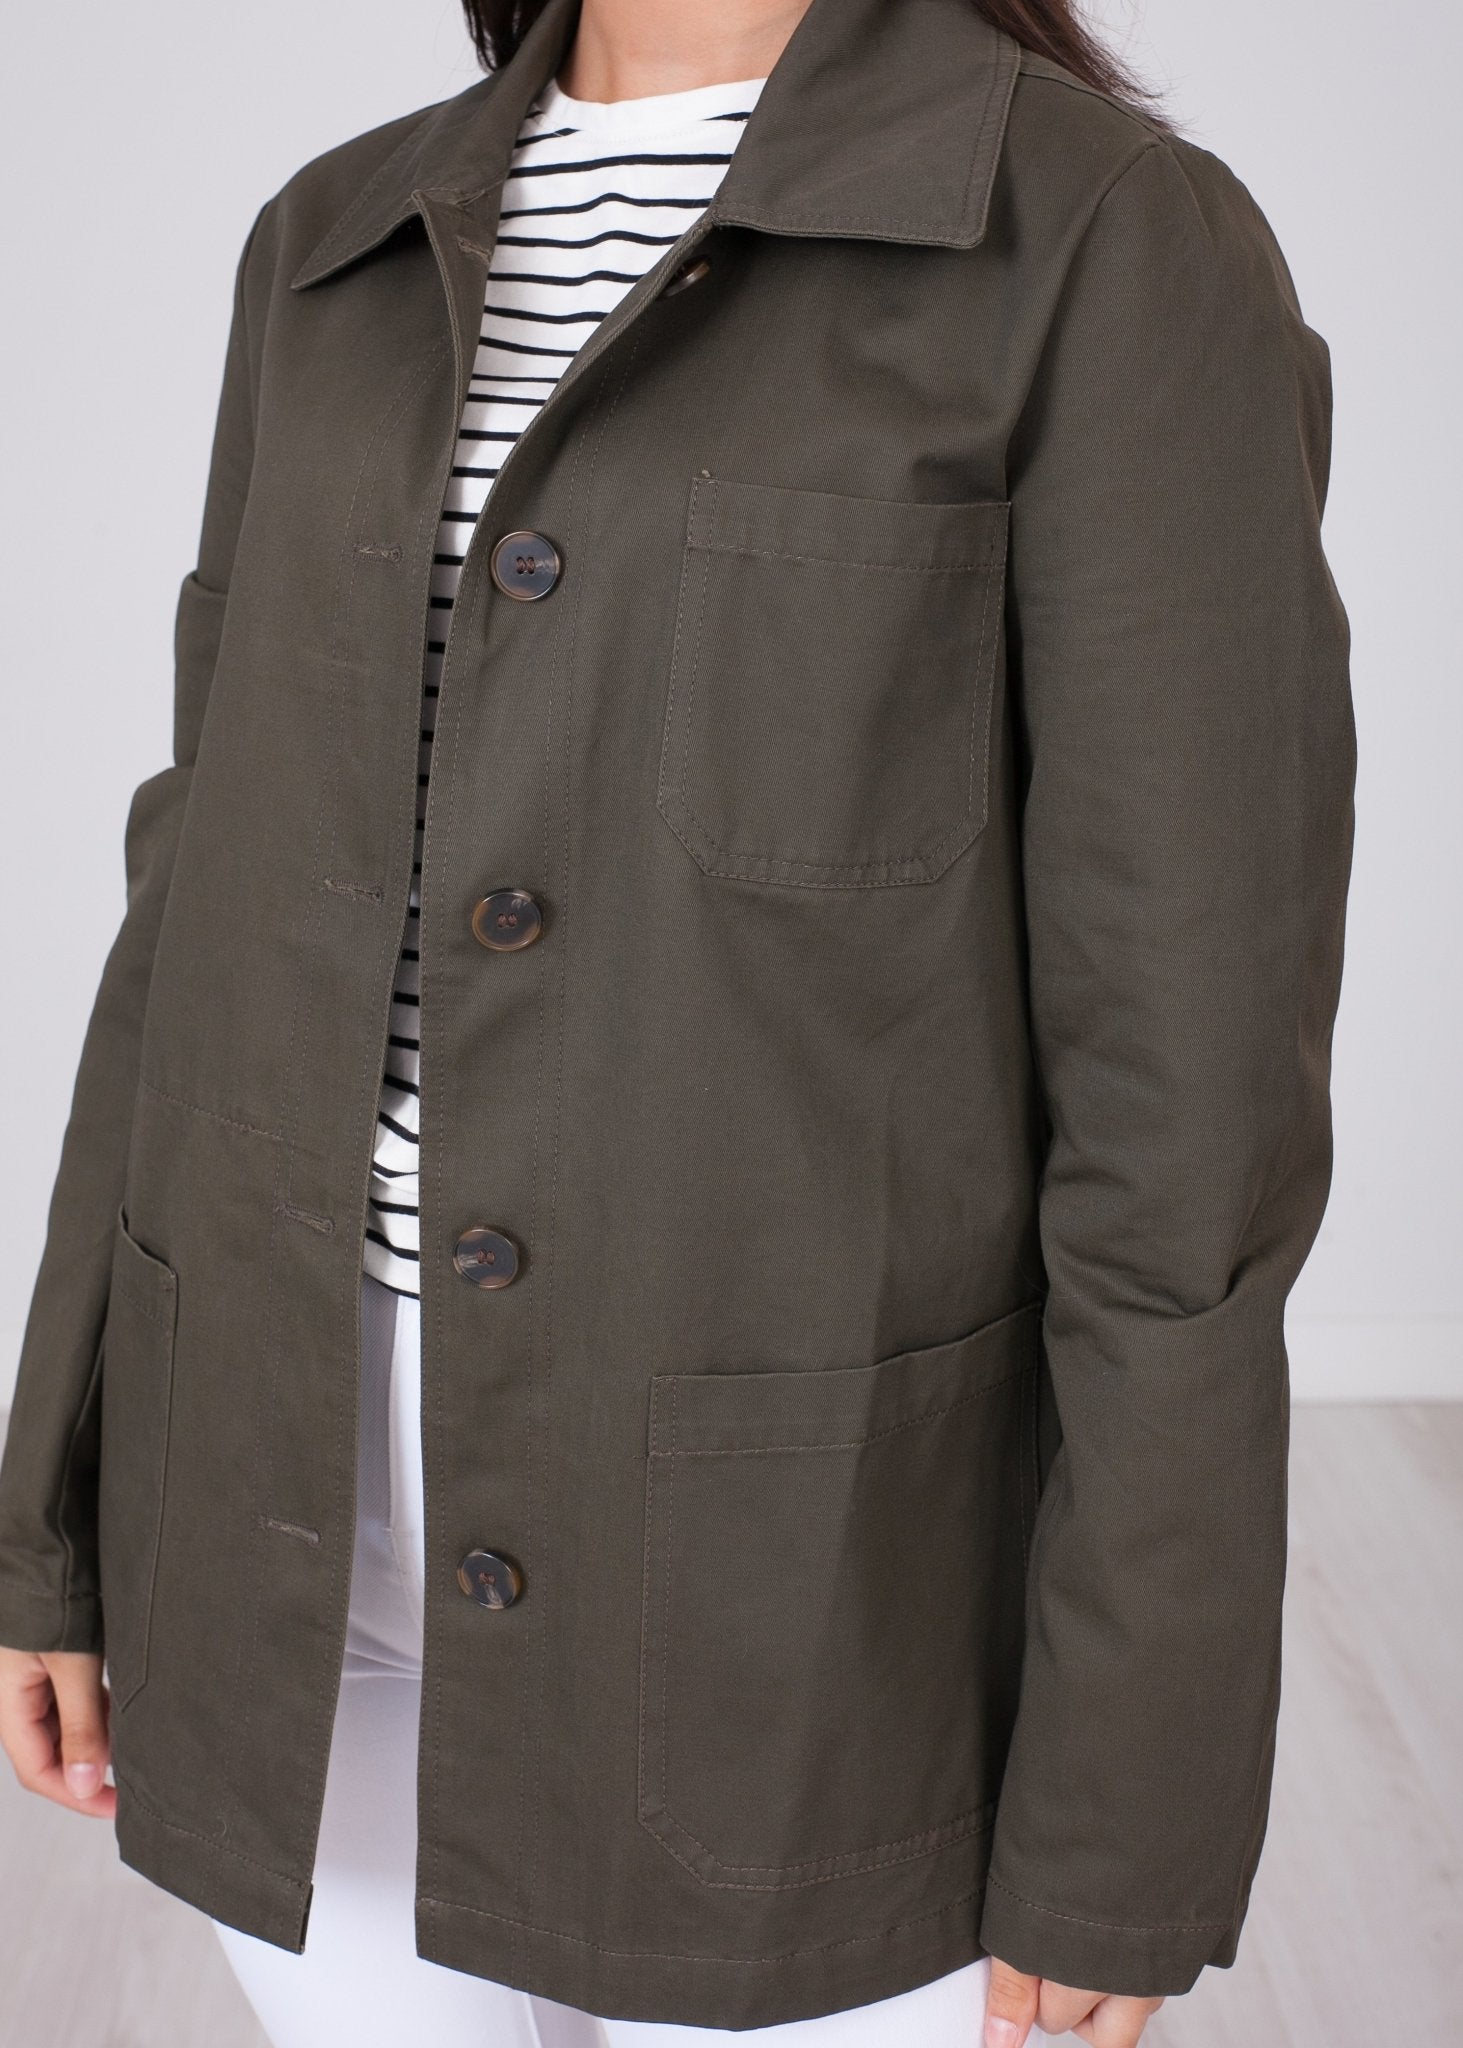 Arabella Khaki Jacket - The Walk in Wardrobe